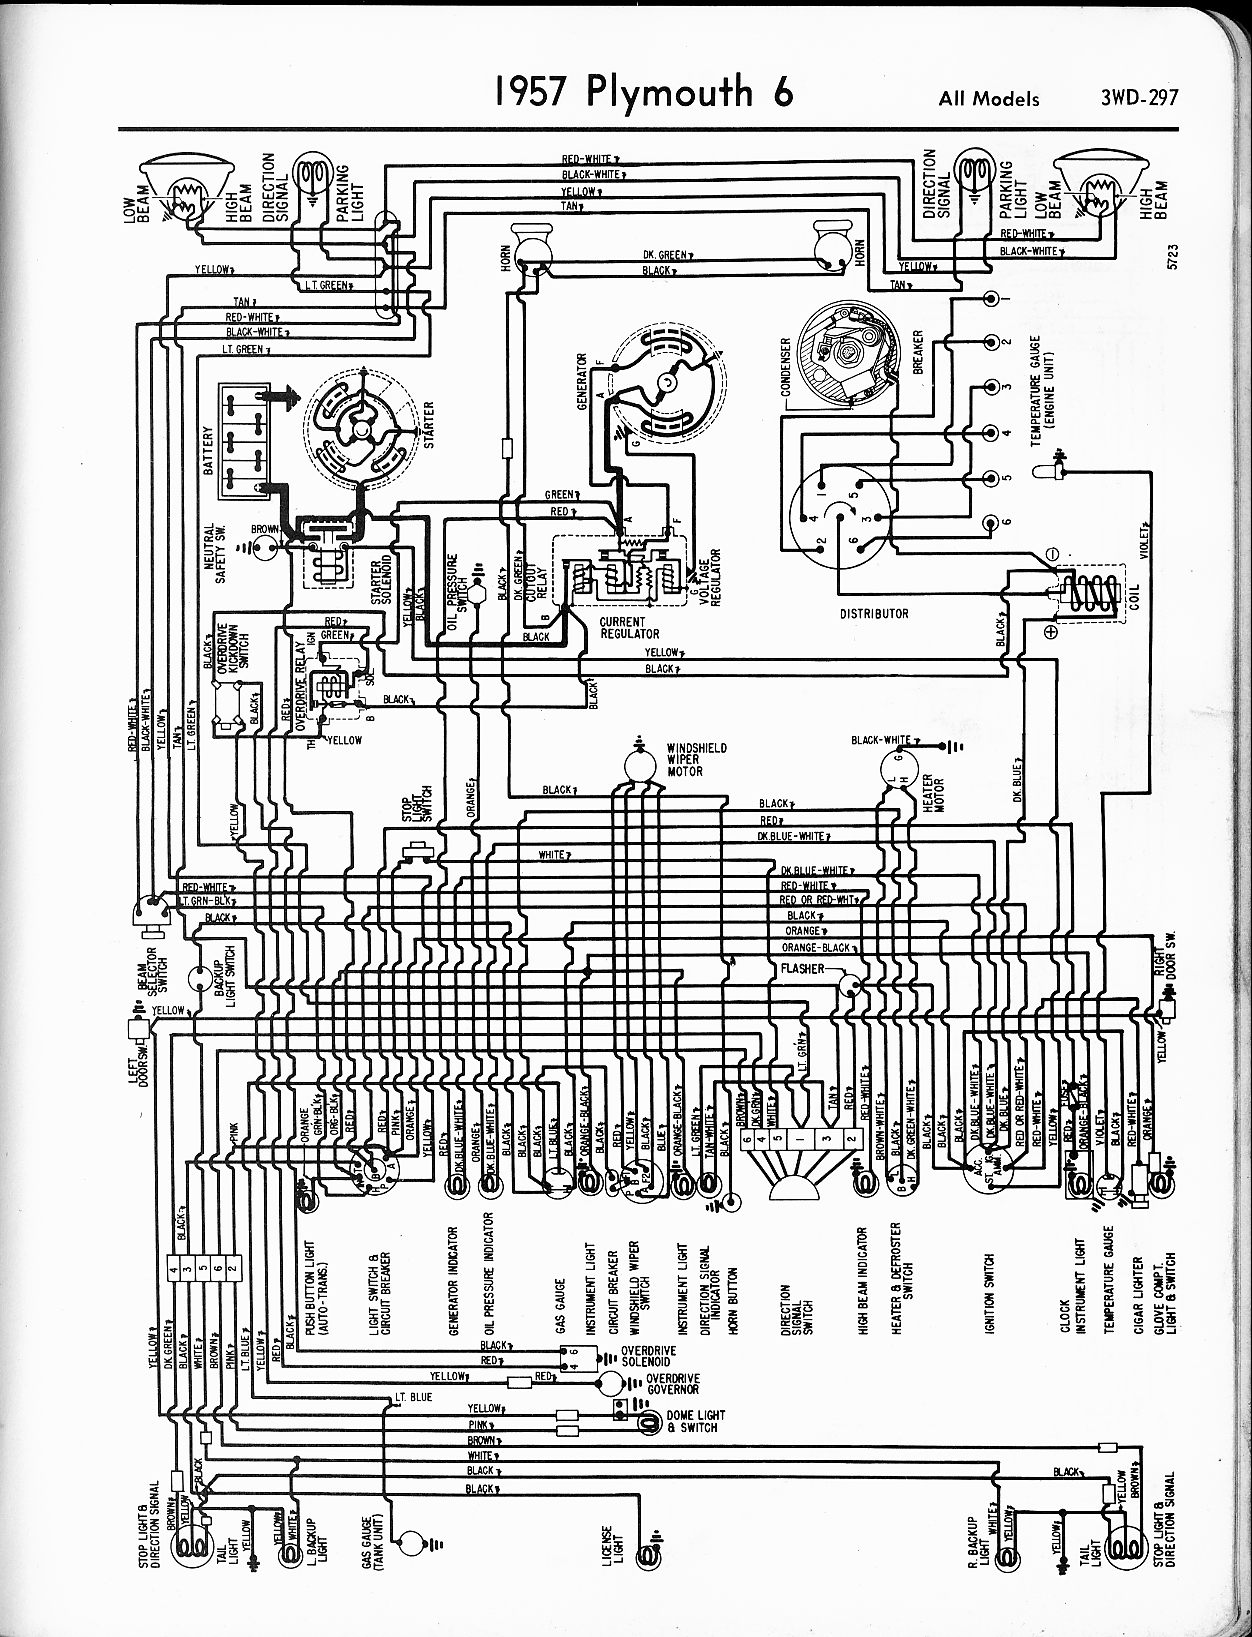 1973 plymouth barracuda fuse box diagram wiring diagram data schema 1973 plymouth duster 1966 plymouth barracuda fuse box wiring wiring diagram hub 1973 plymouth duster 1966 plymouth barracuda fuse